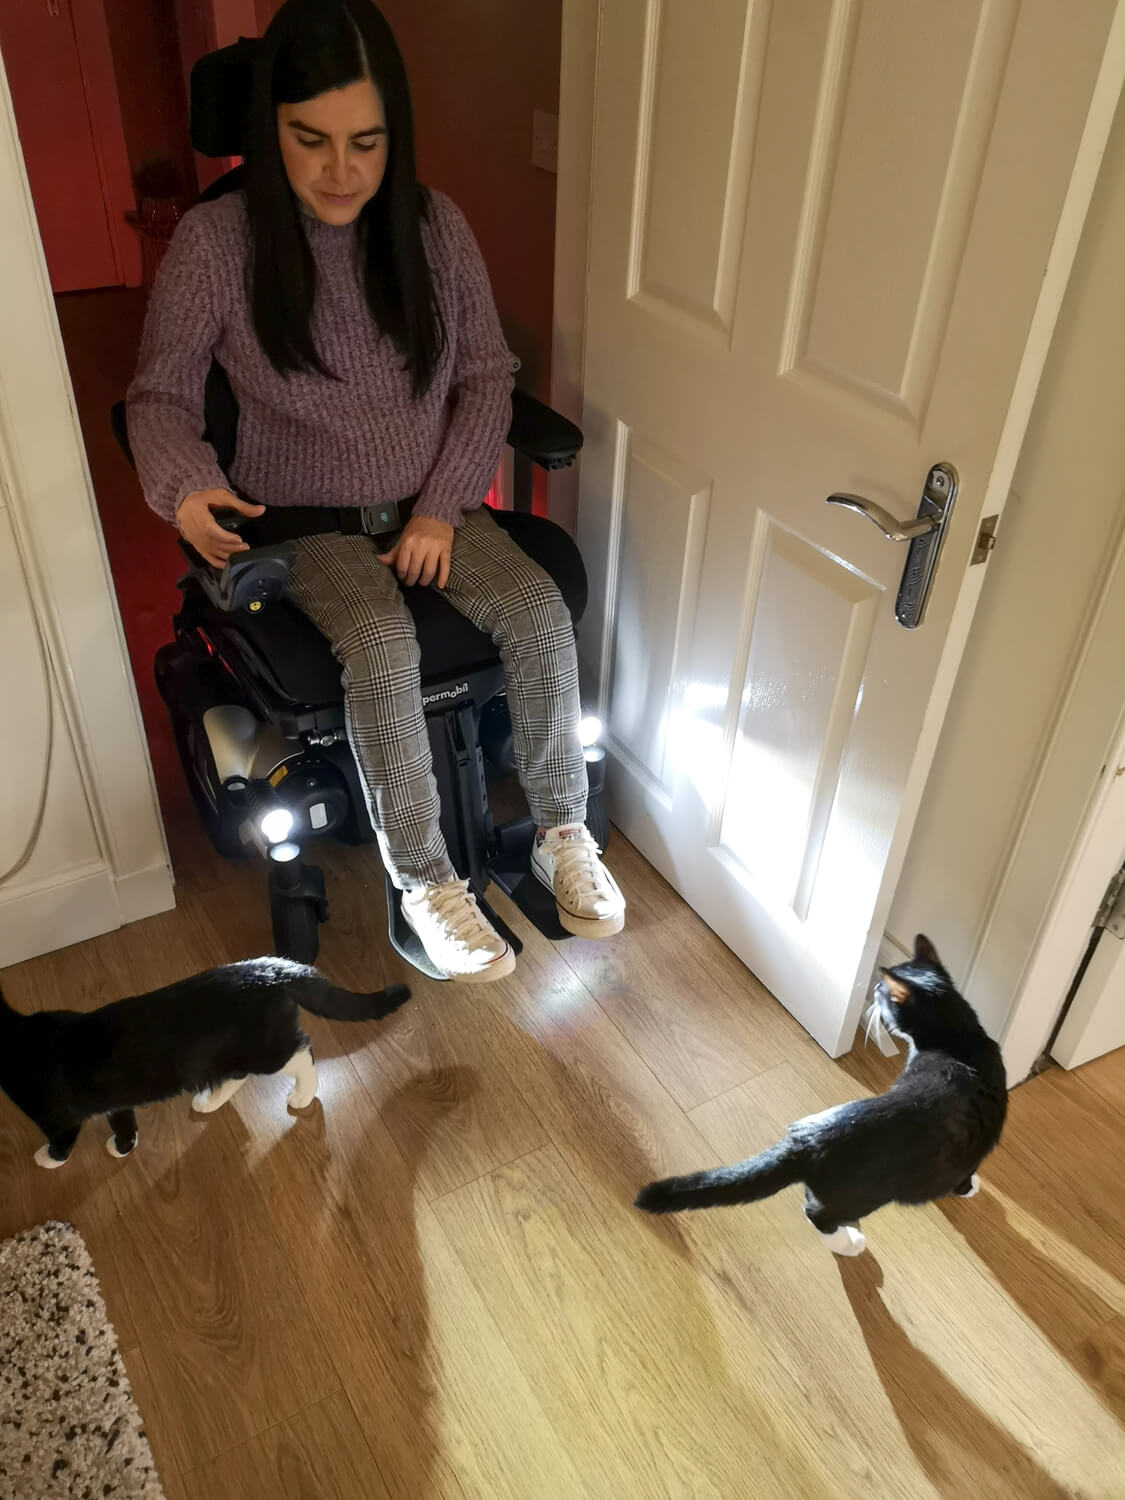 Emma driving her Permobil powerchair in her home with the LED lights on. Her two black and white cats are walking in front of her.